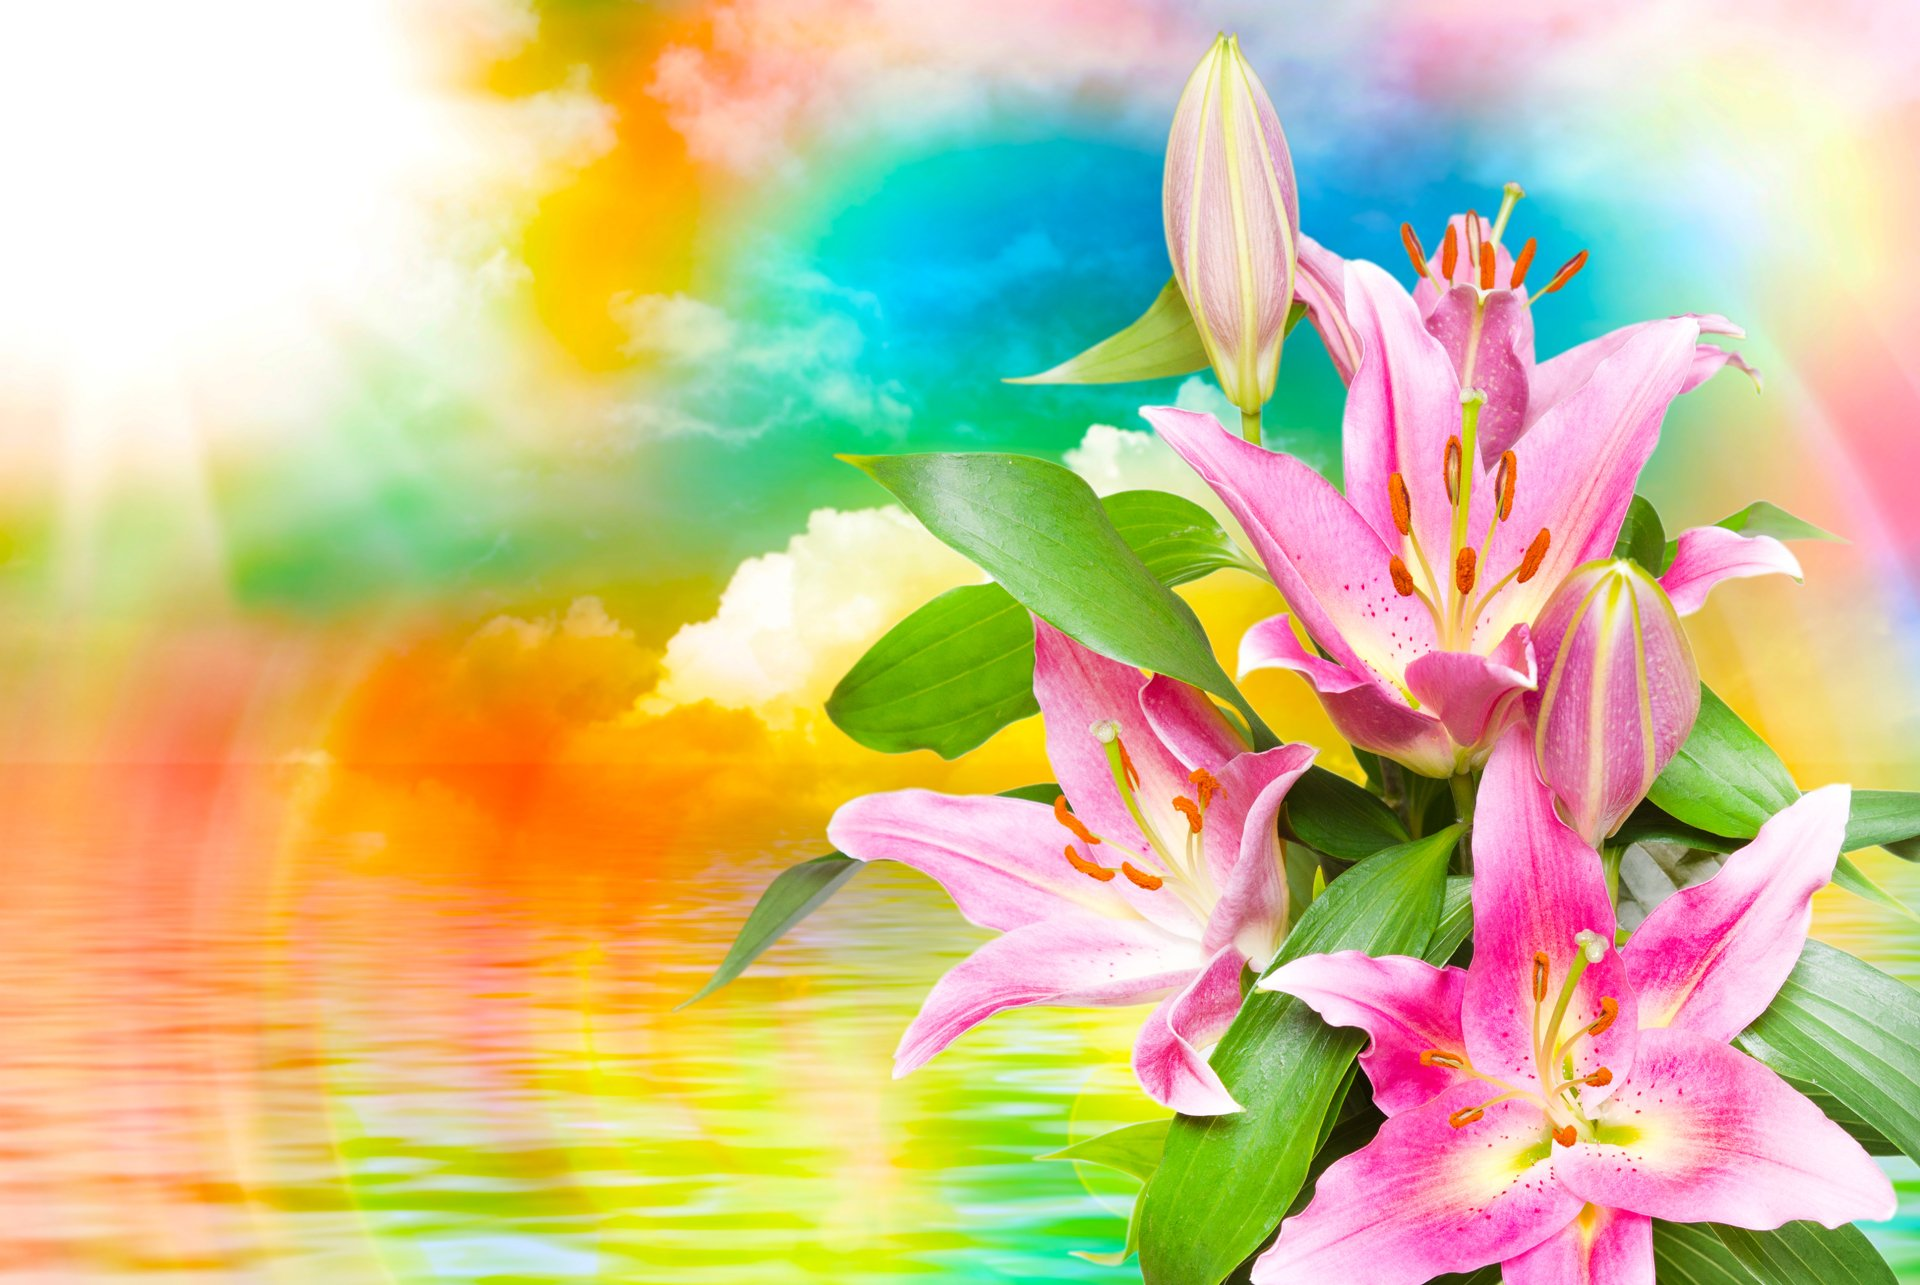 Artistic - Flower  Artistic Lily Colors Colorful Cloud Sunbeam Pink Flower Wallpaper